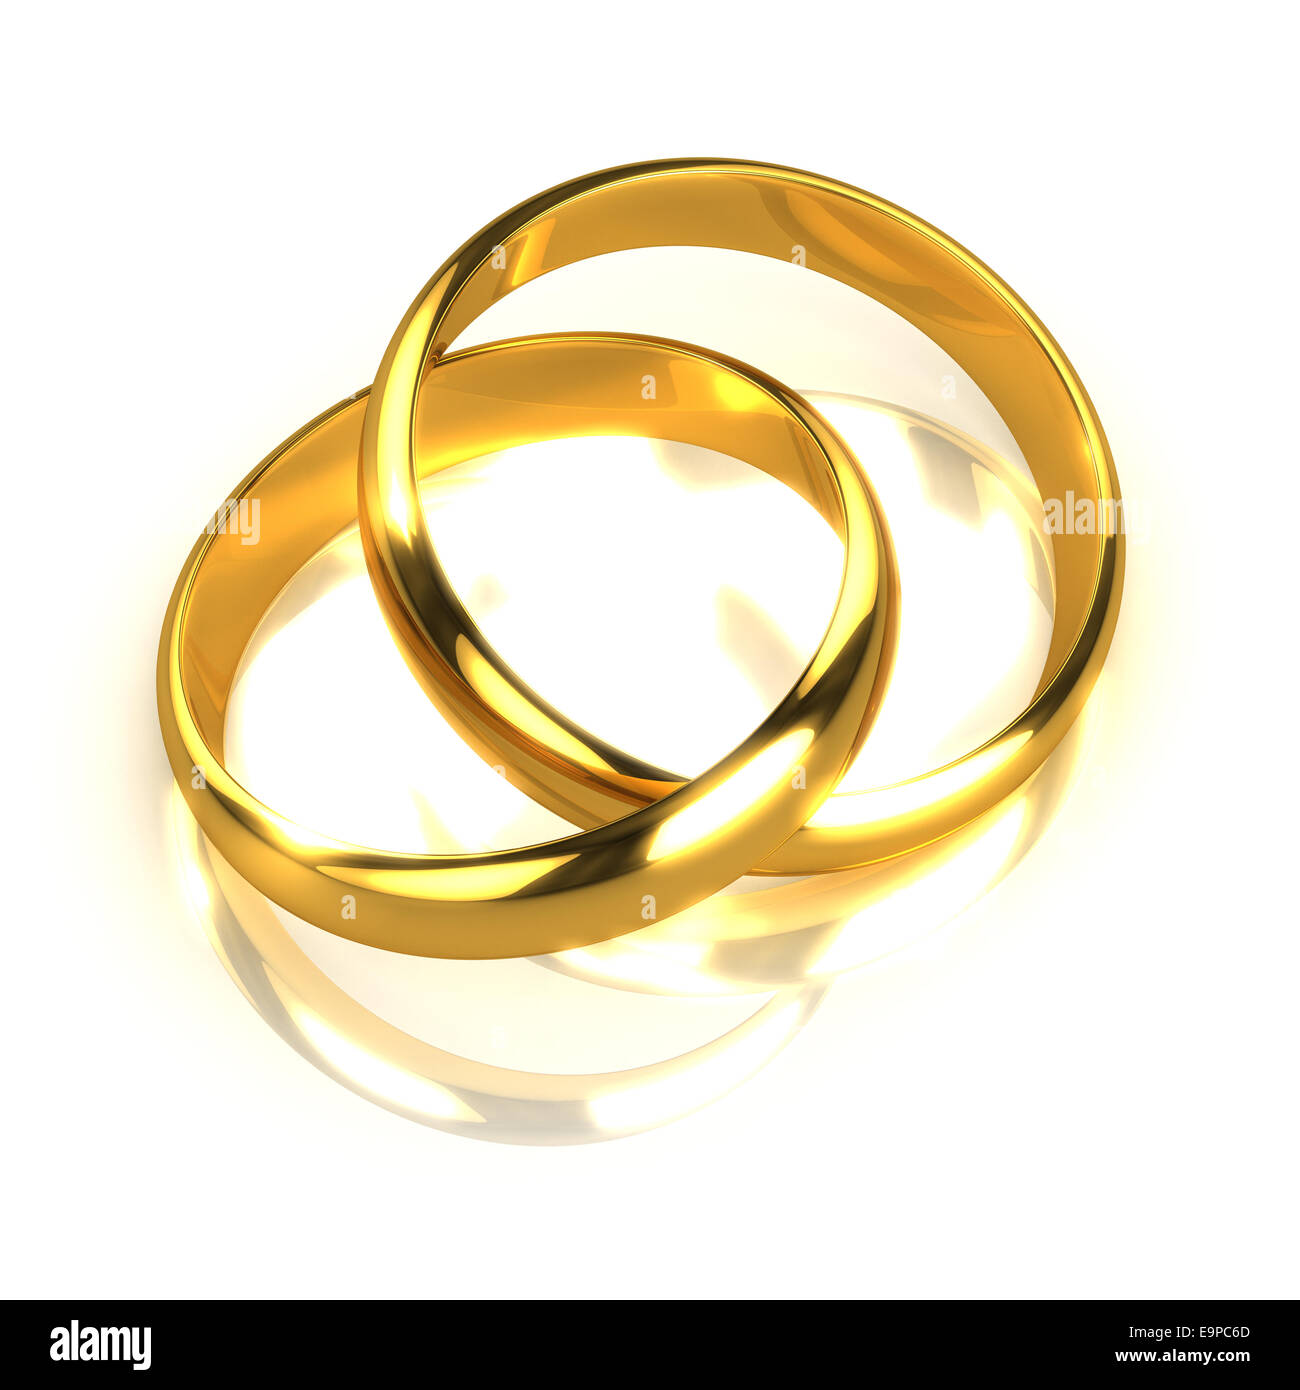 3d render of two gold rings joined together stock photo 74865909